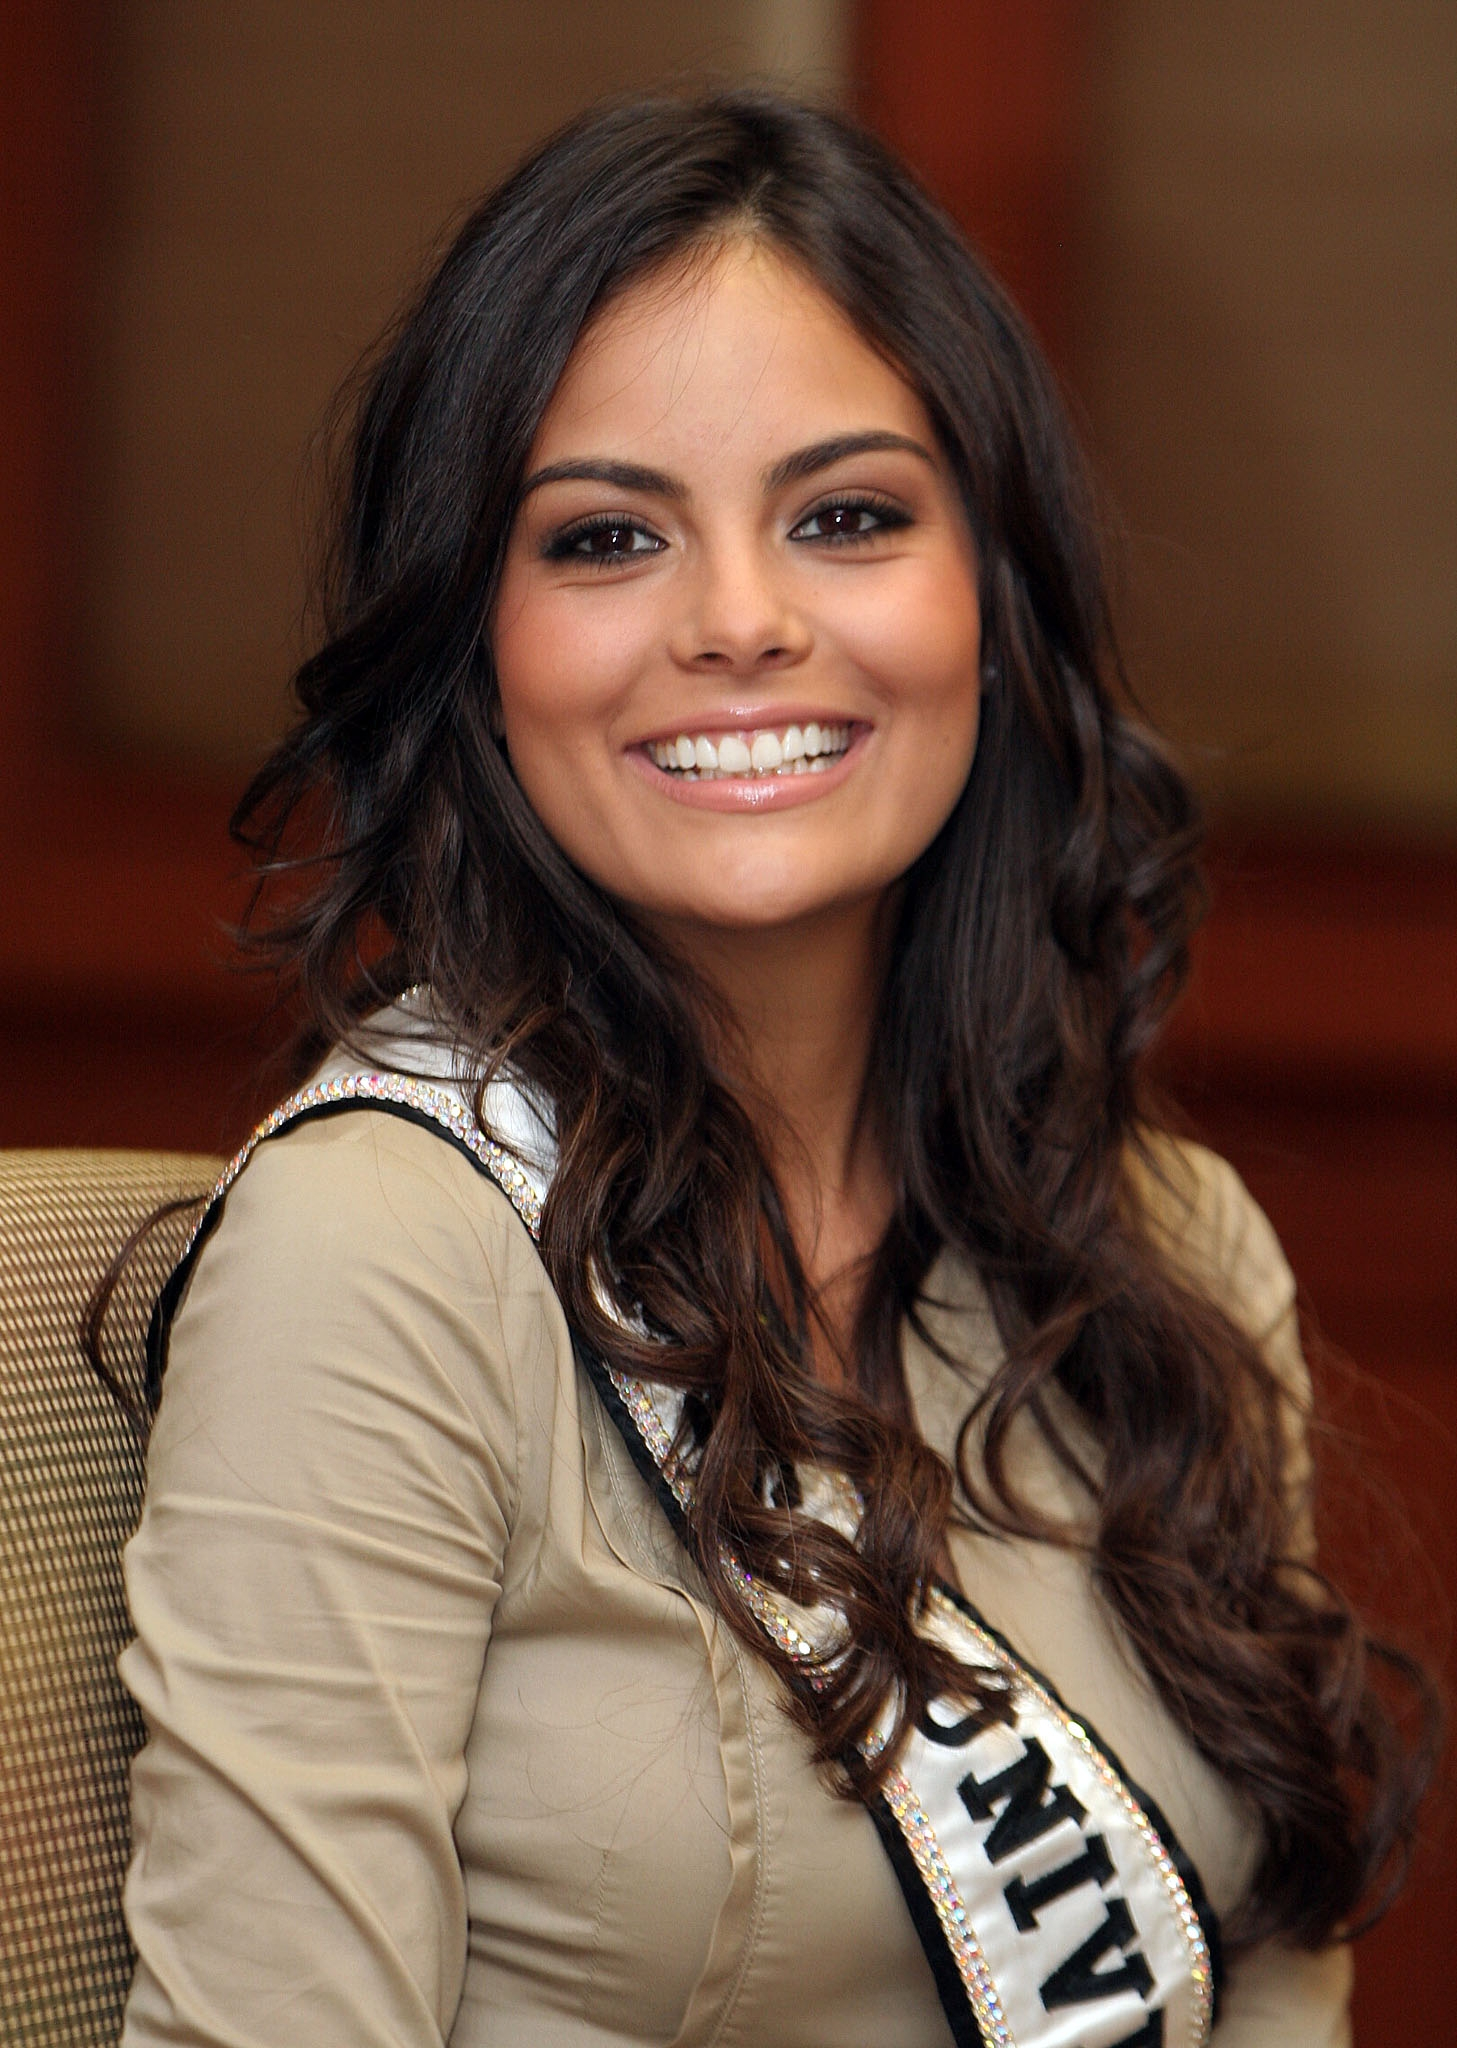 Description Ximena Navarrete - Miss Universe 2010.jpg